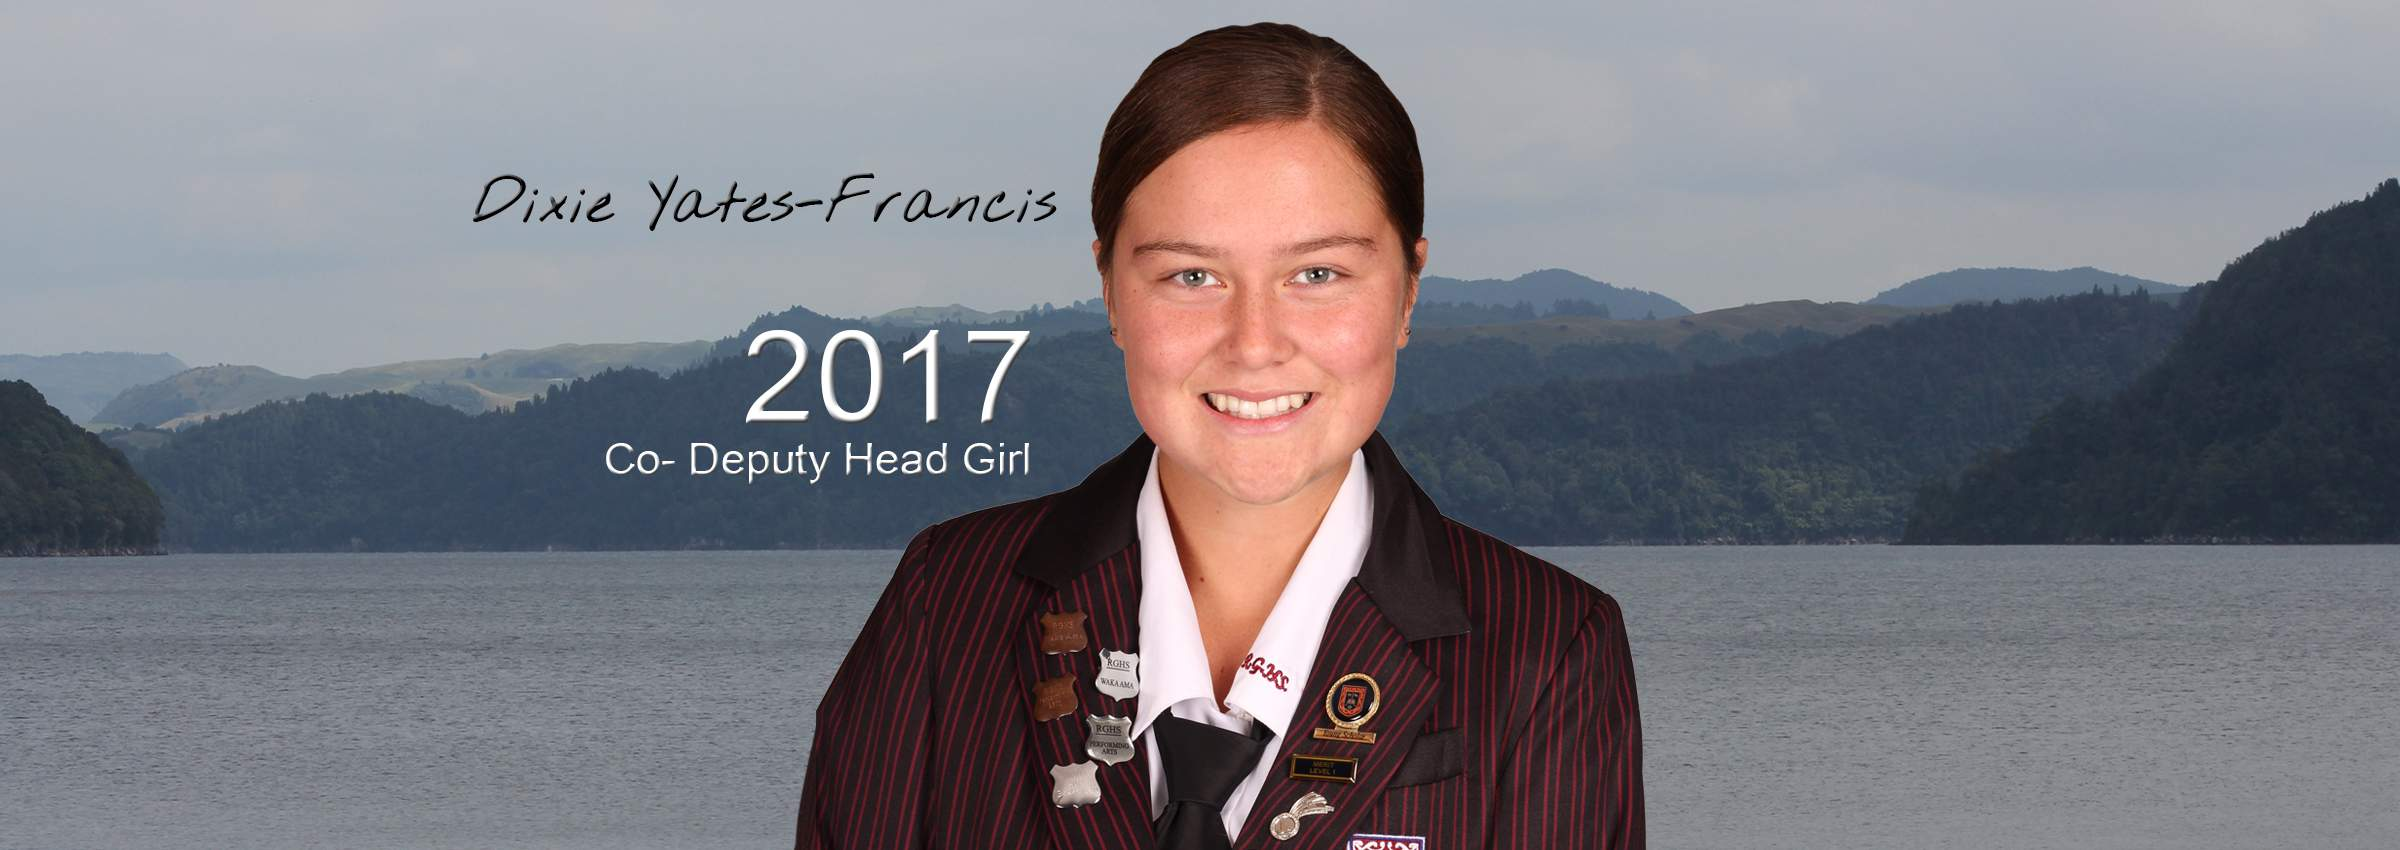 2017 co -deputy HEAD GIRL BANNER Dixie